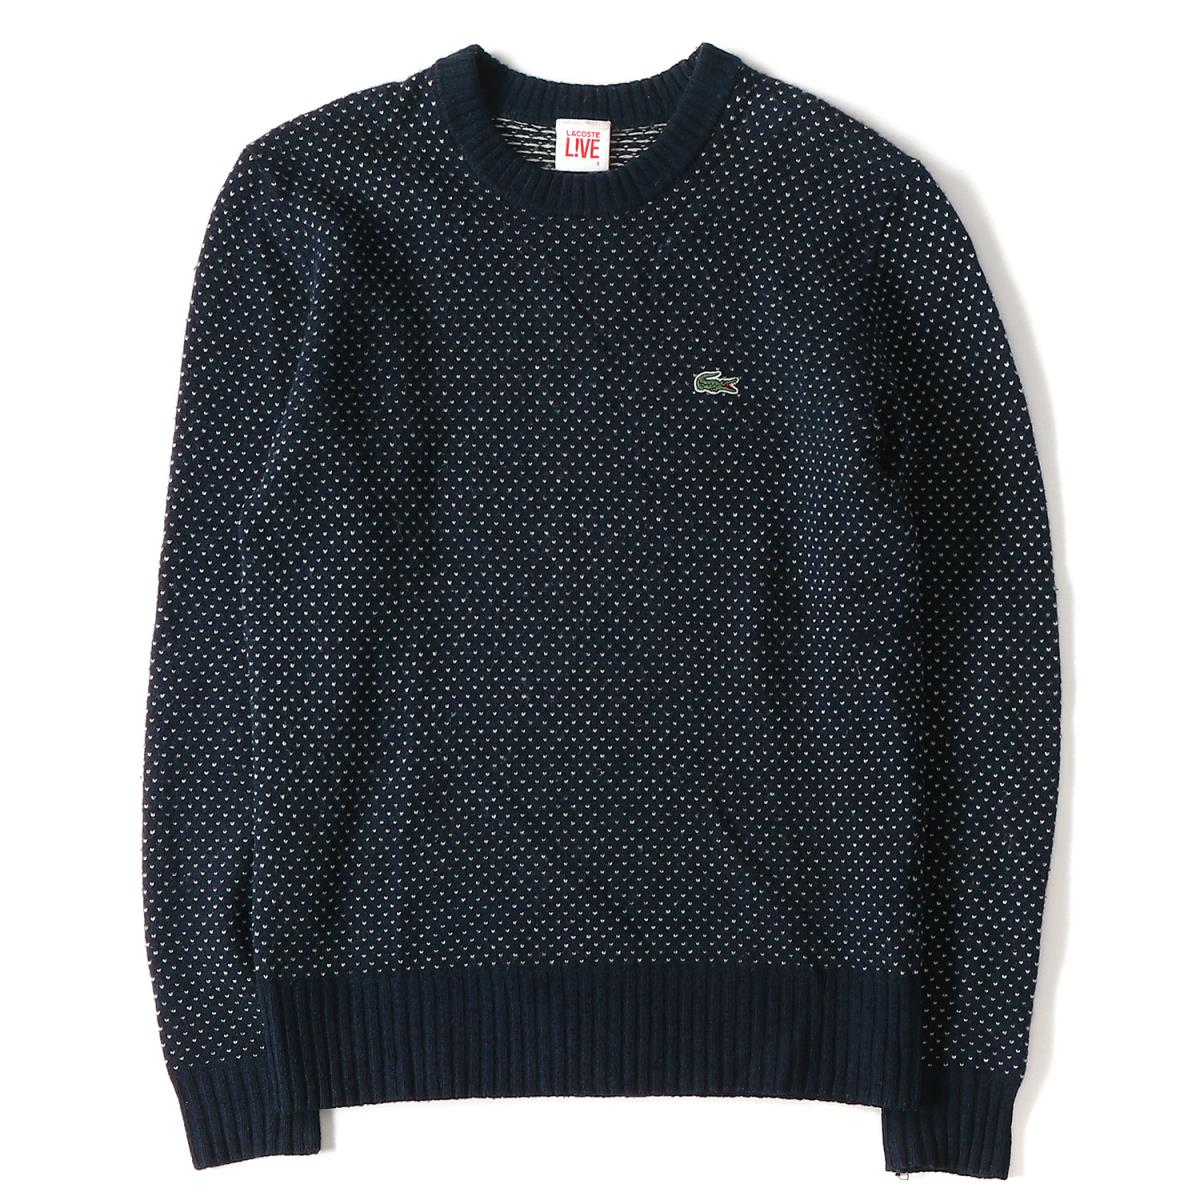 c612a29f69 BEEGLE by Boo-Bee  LACOSTE (Lacoste) dobby dot crew neck wool knit ...